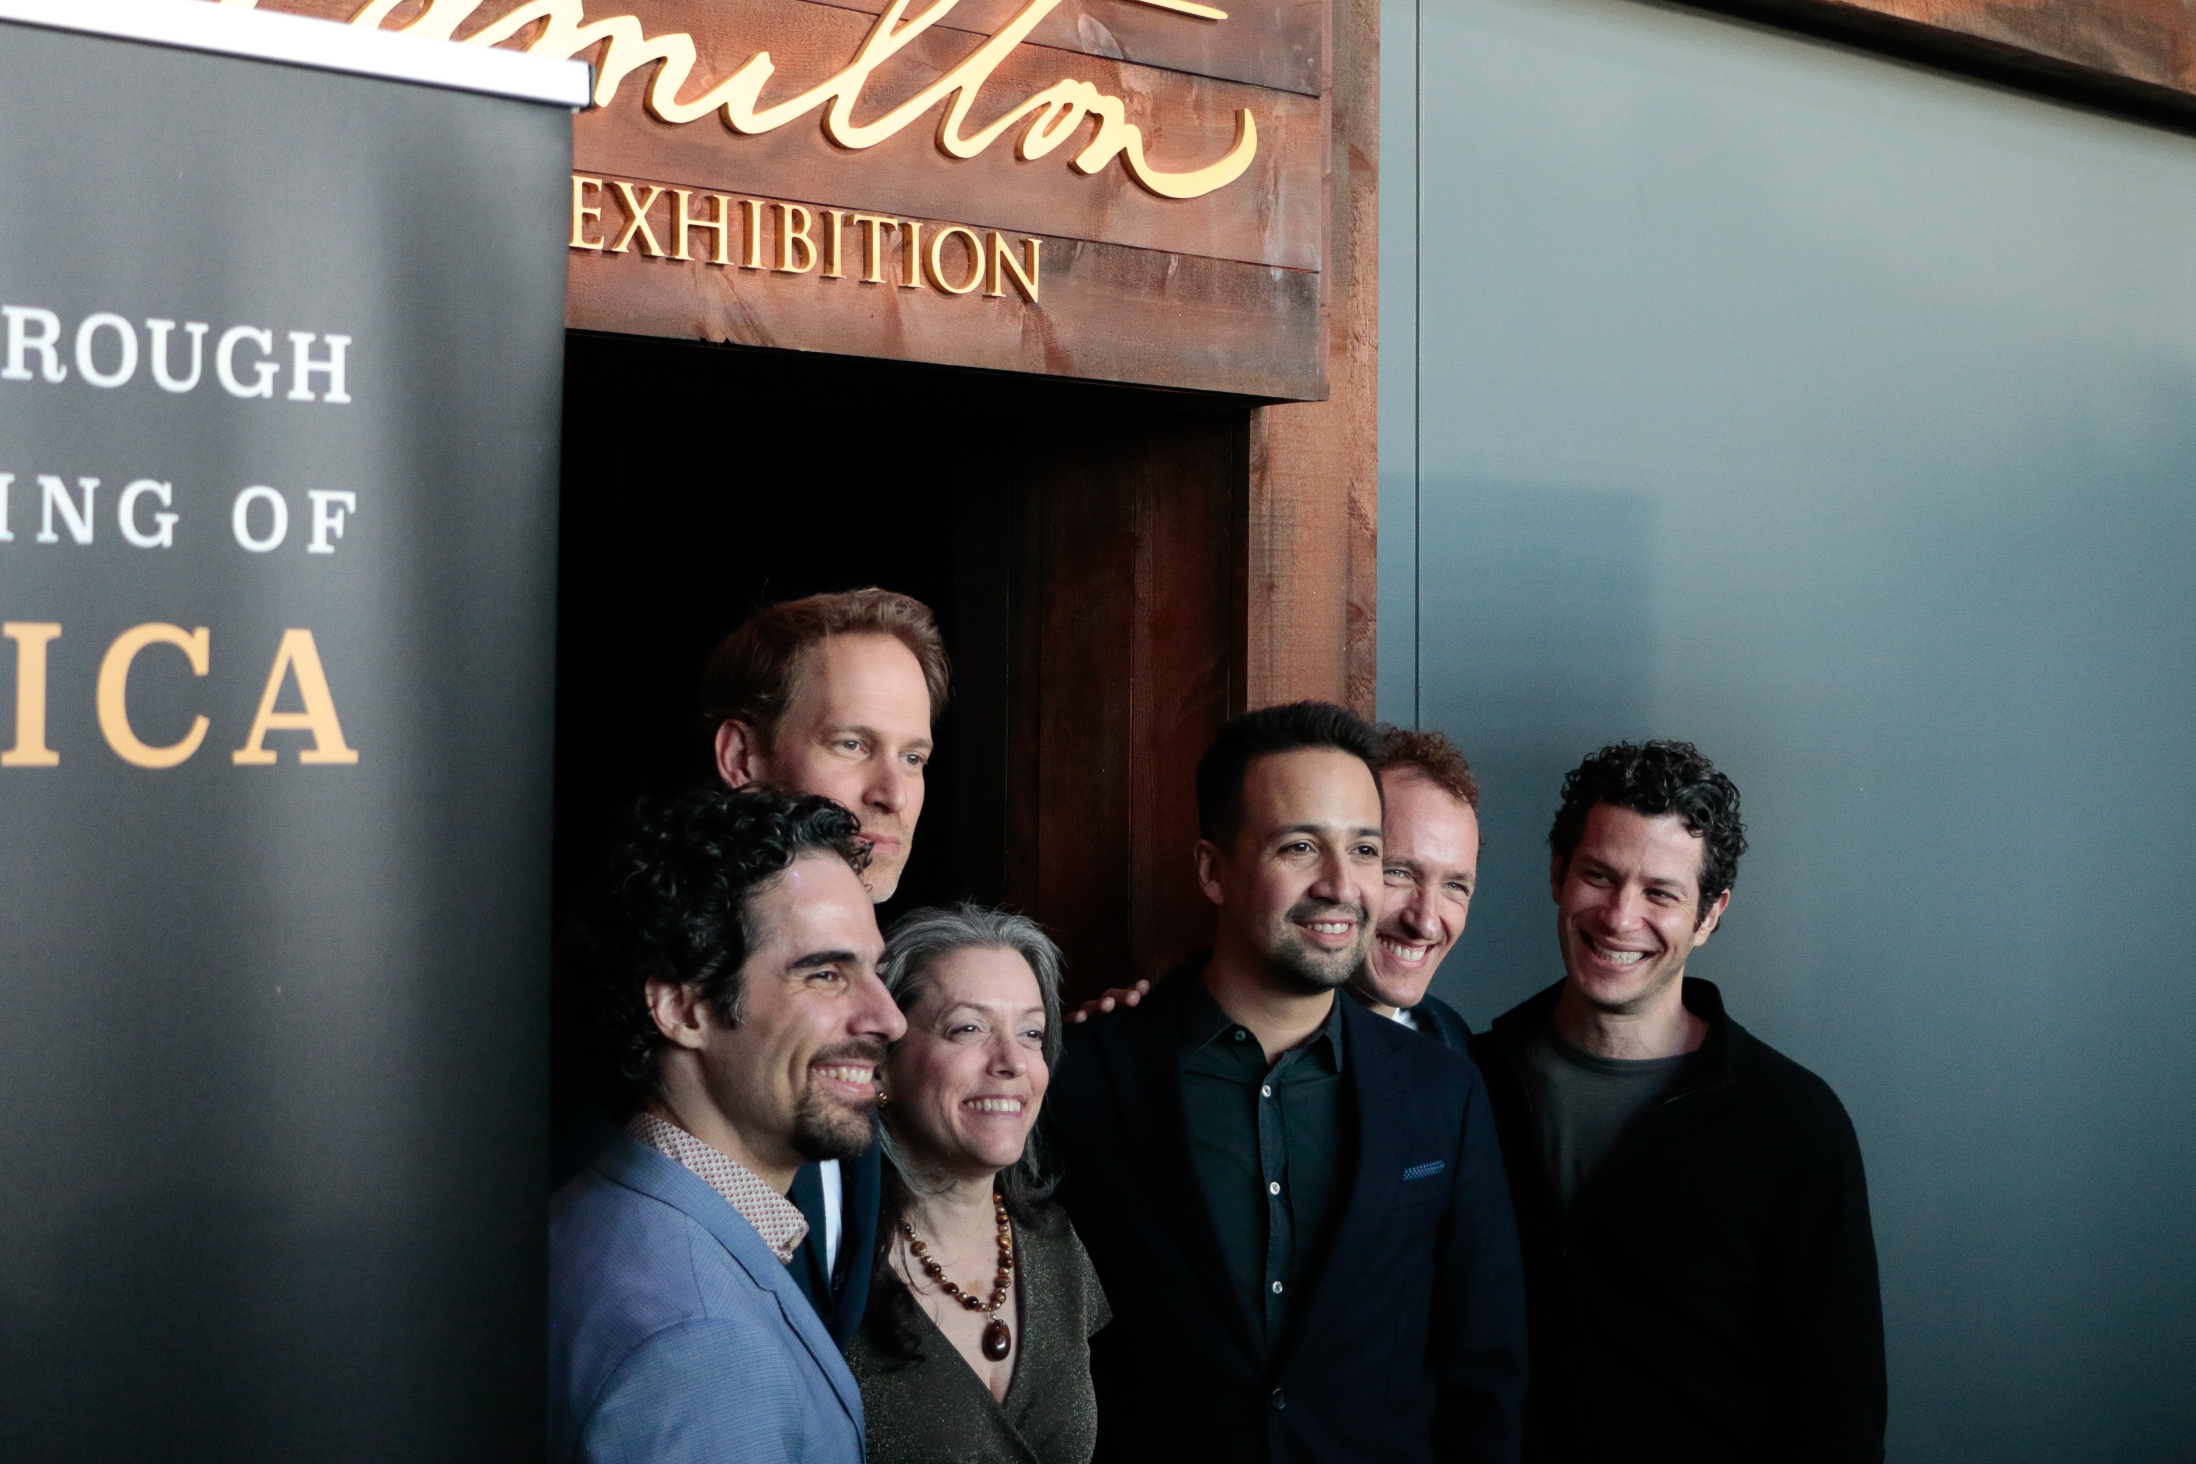 The creative team at the Hamilton Exhibition Ribbon Cutting, April 26th, 2019. Photo by Mary Crylen.